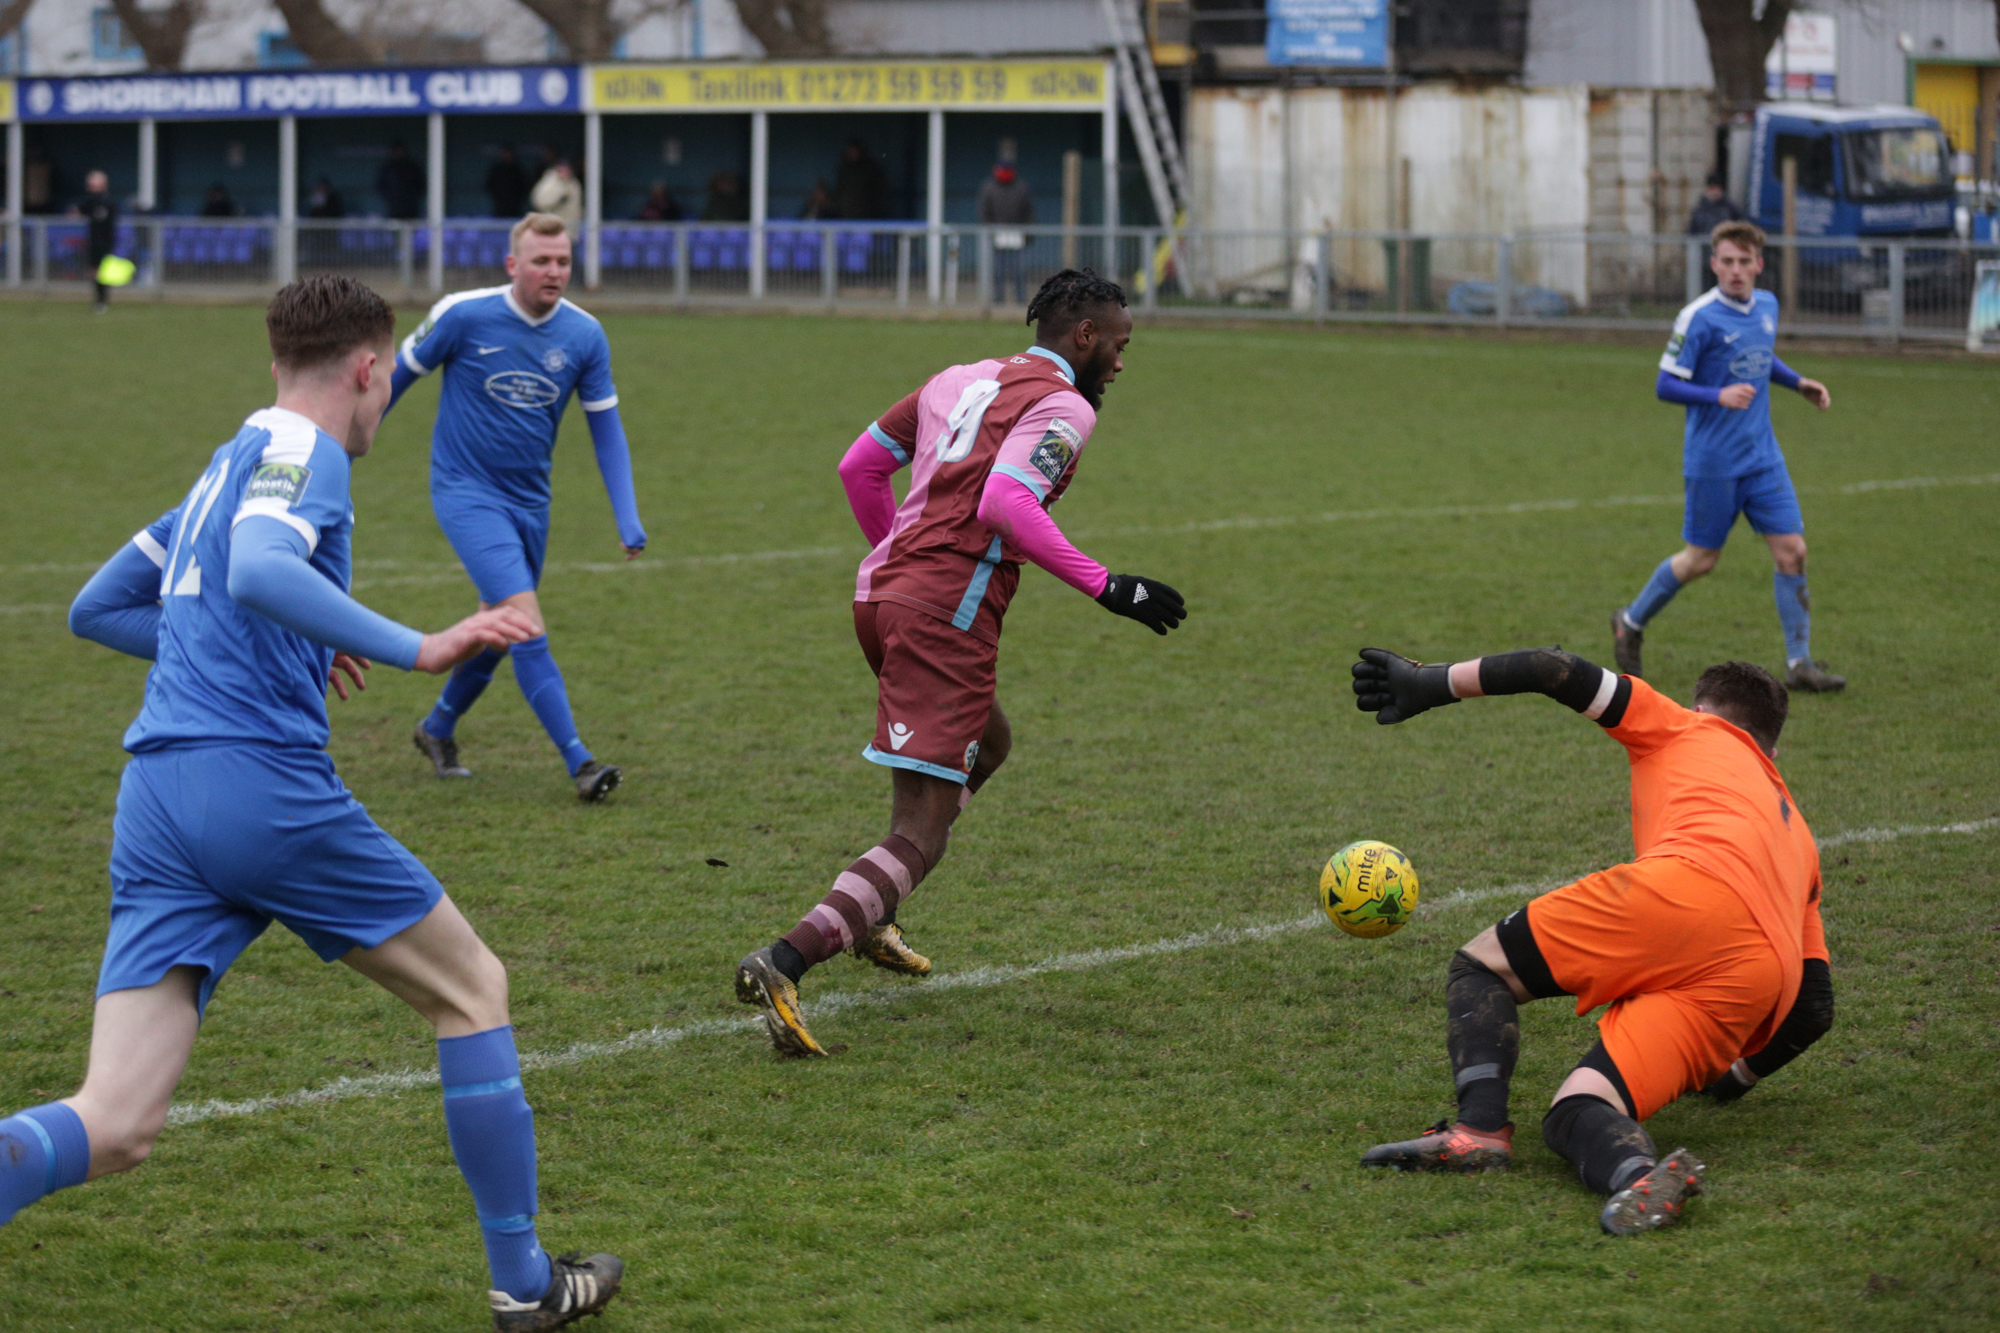 Gabriel Odunaike grabs the second goal for Corinthian-Casuals at Shoreham. Picture: Stuart Tree